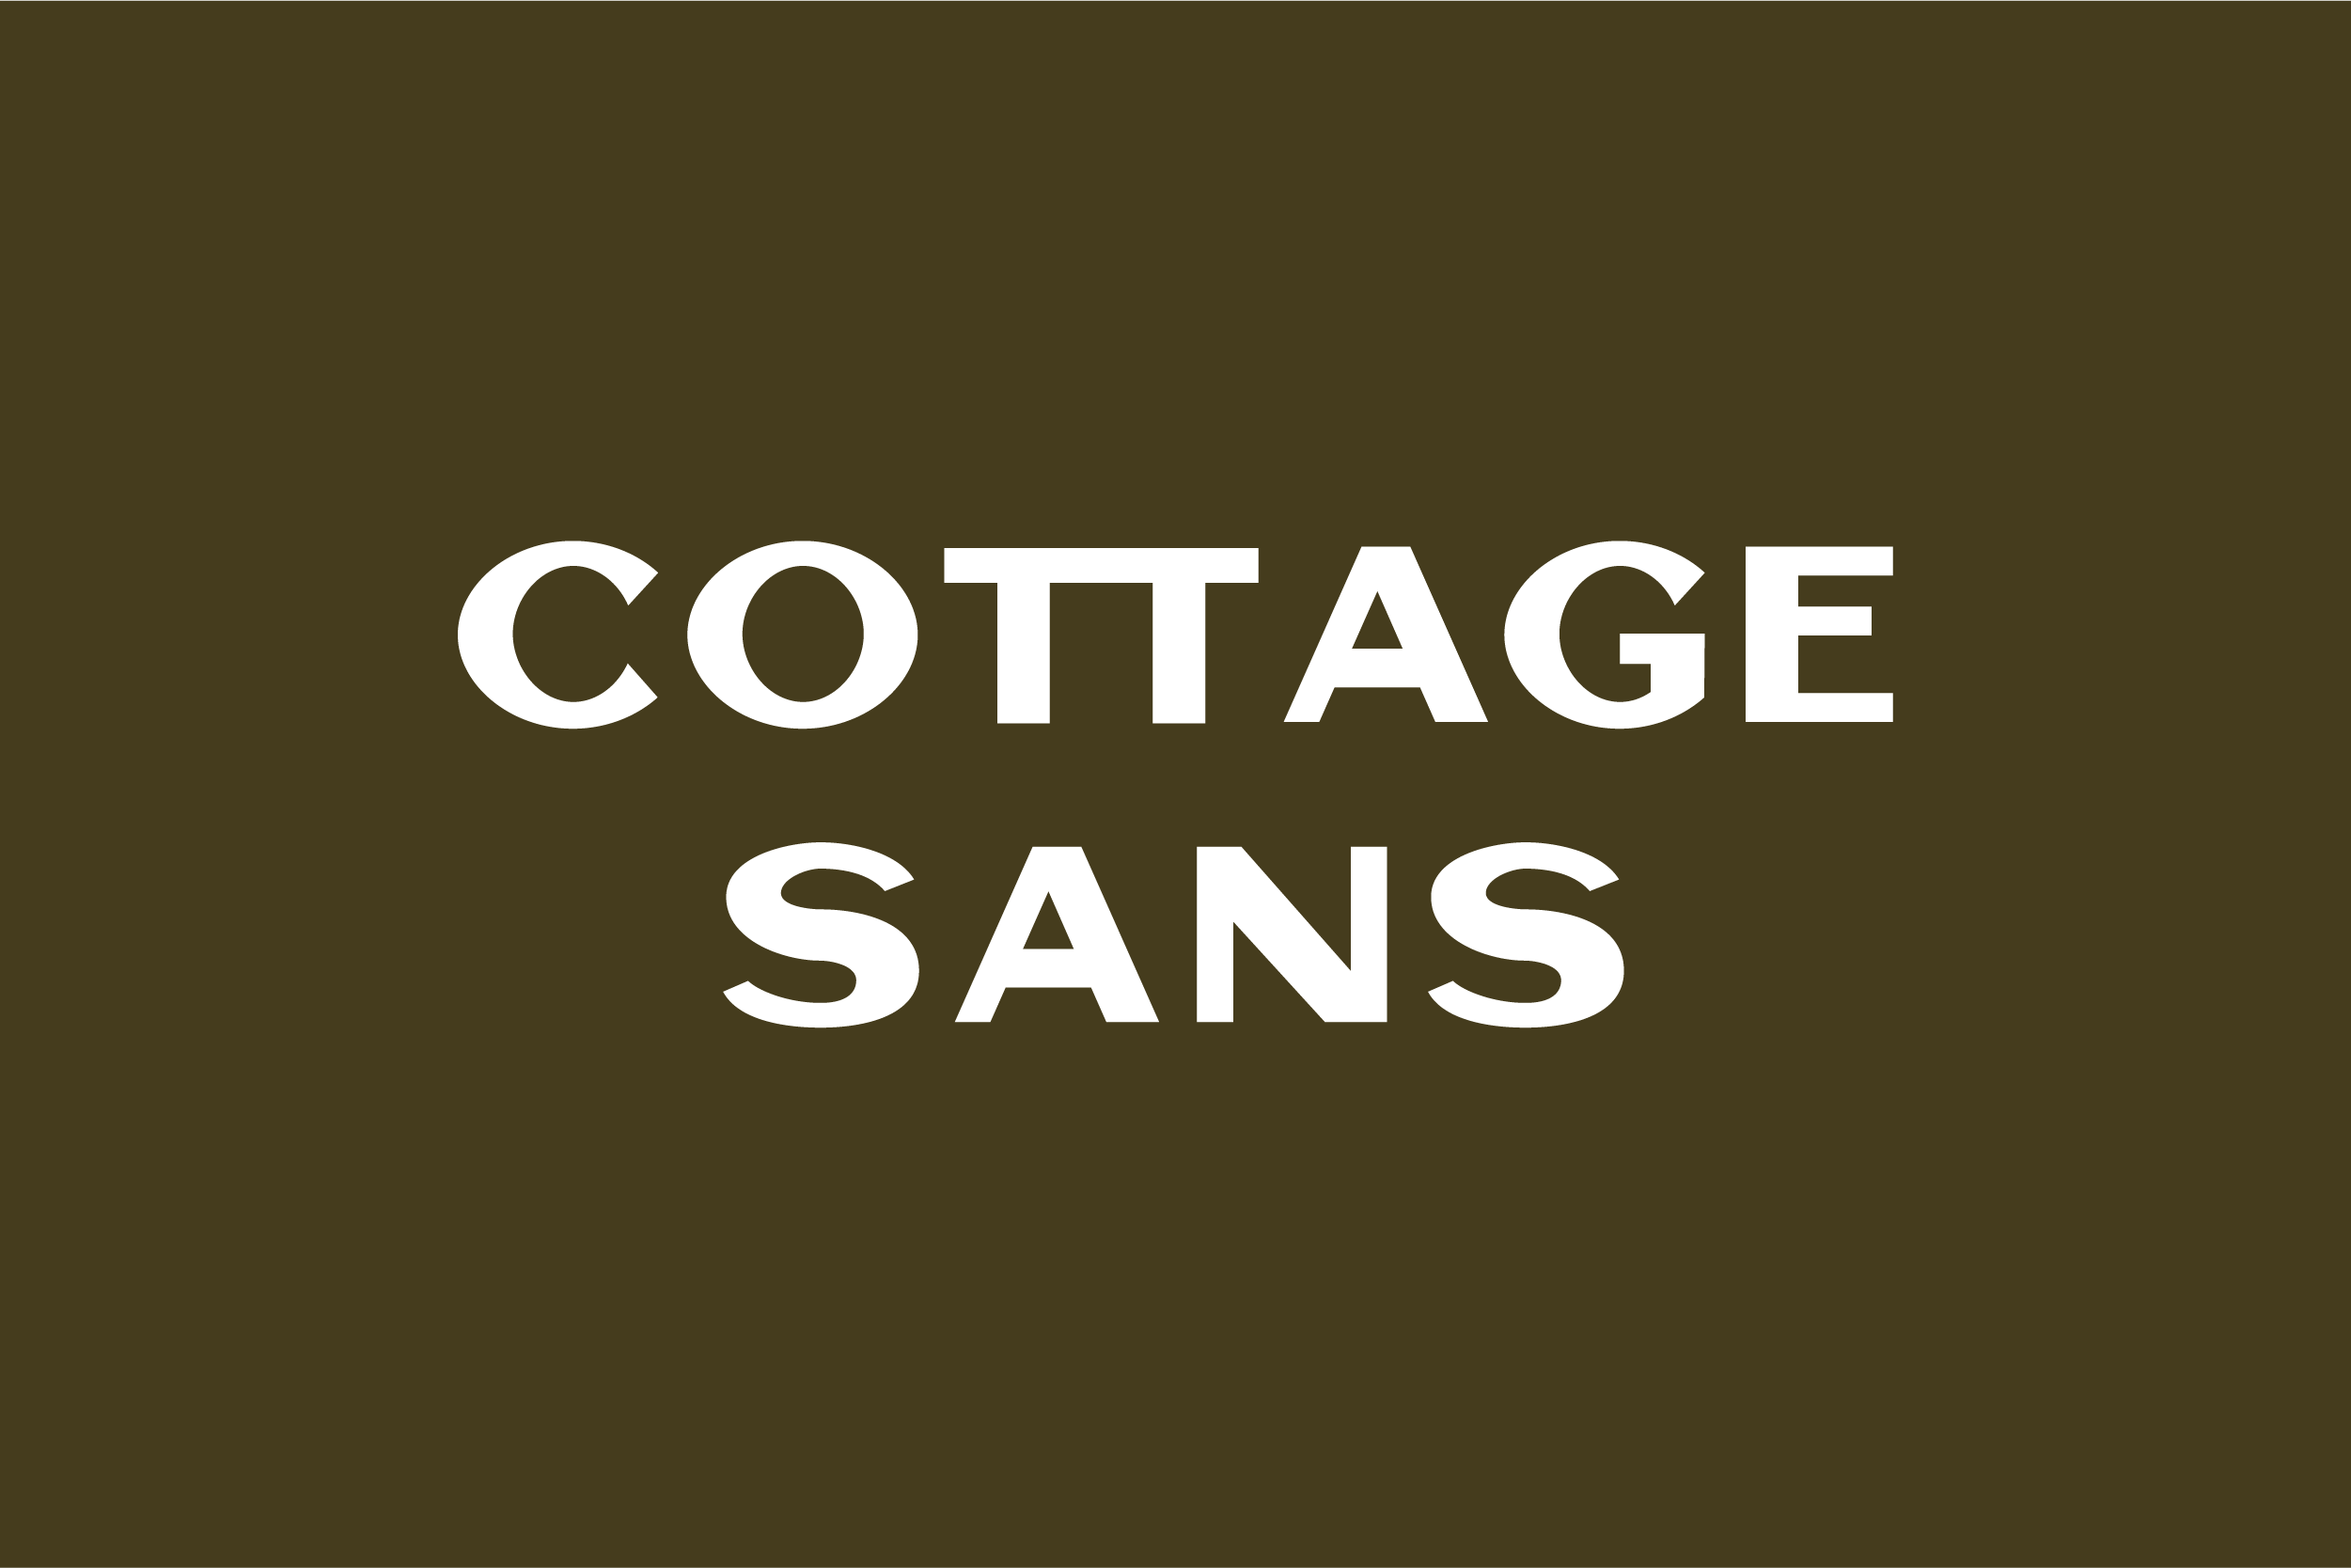 Cottage Sans - 1950's Style example image 5